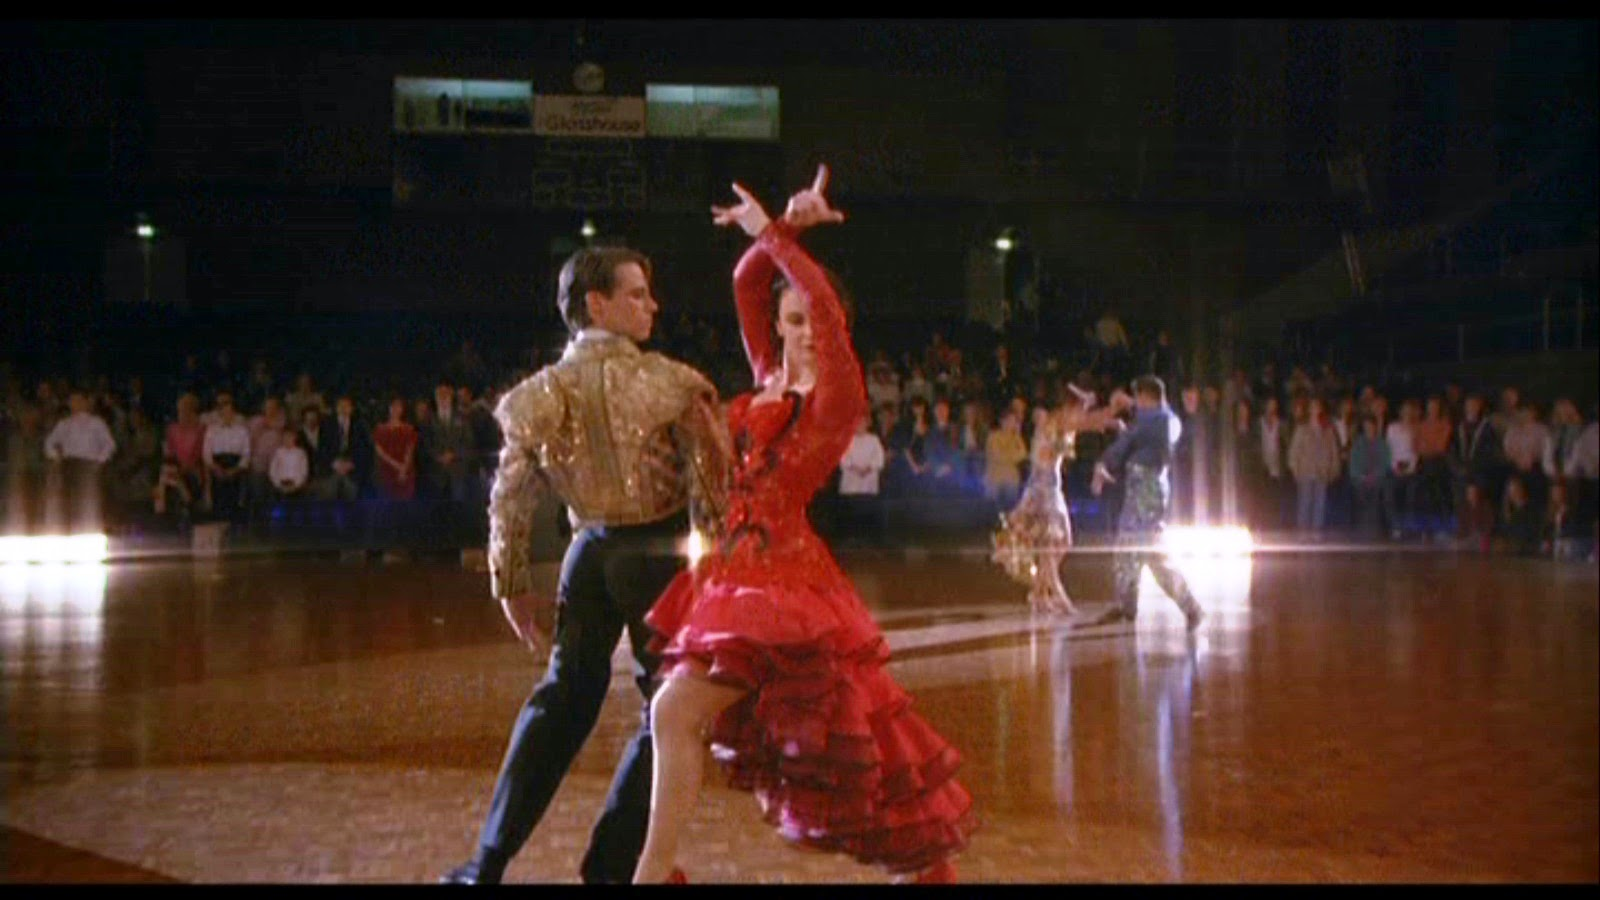 strictly ballroom analysis